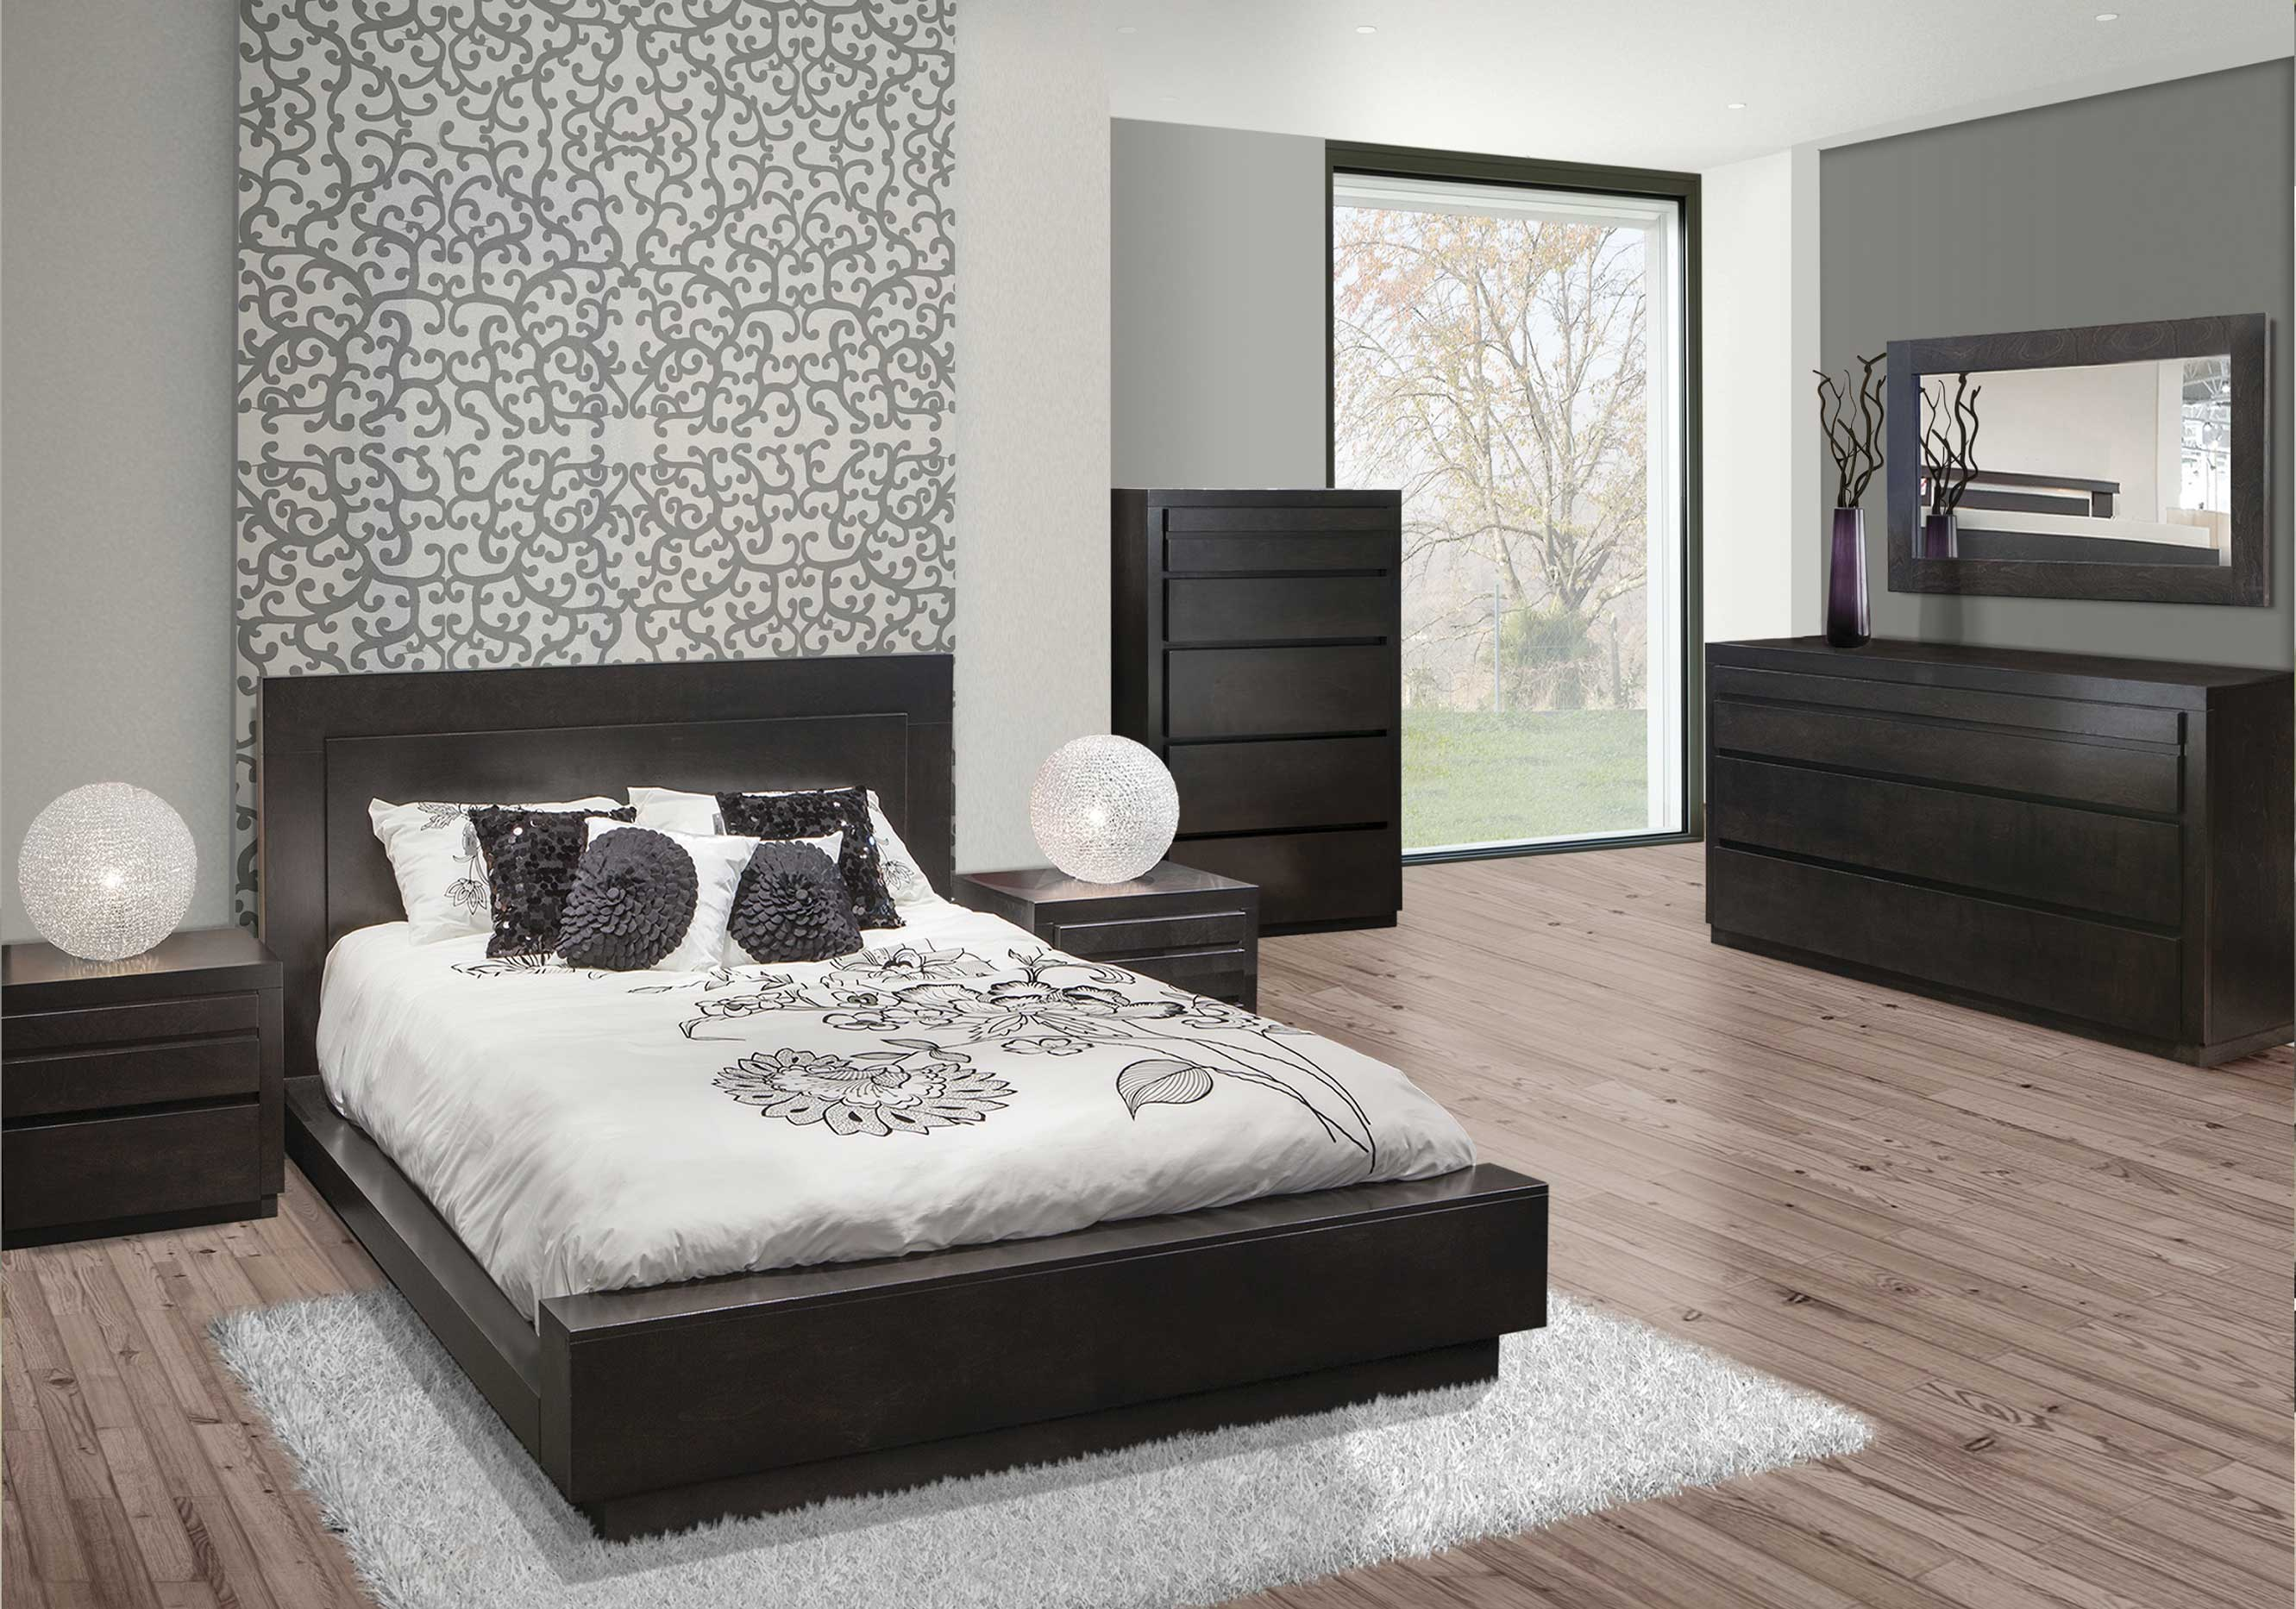 viebois catalogue chambres coucher 700. Black Bedroom Furniture Sets. Home Design Ideas